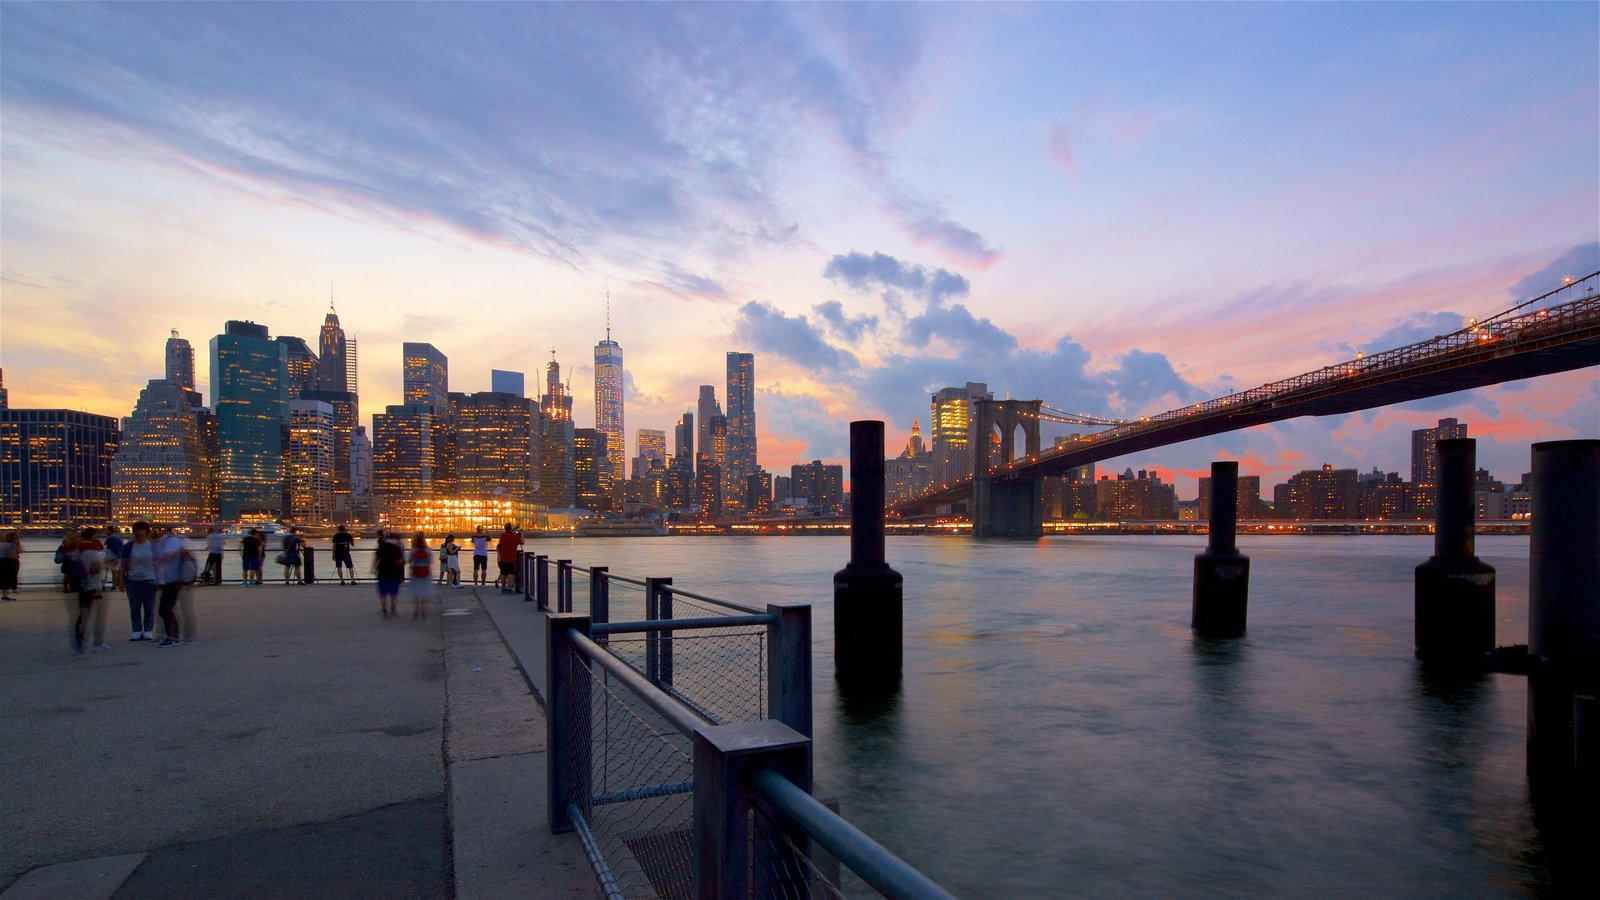 Brooklyn Heights Promenade Pictures View Photos Images